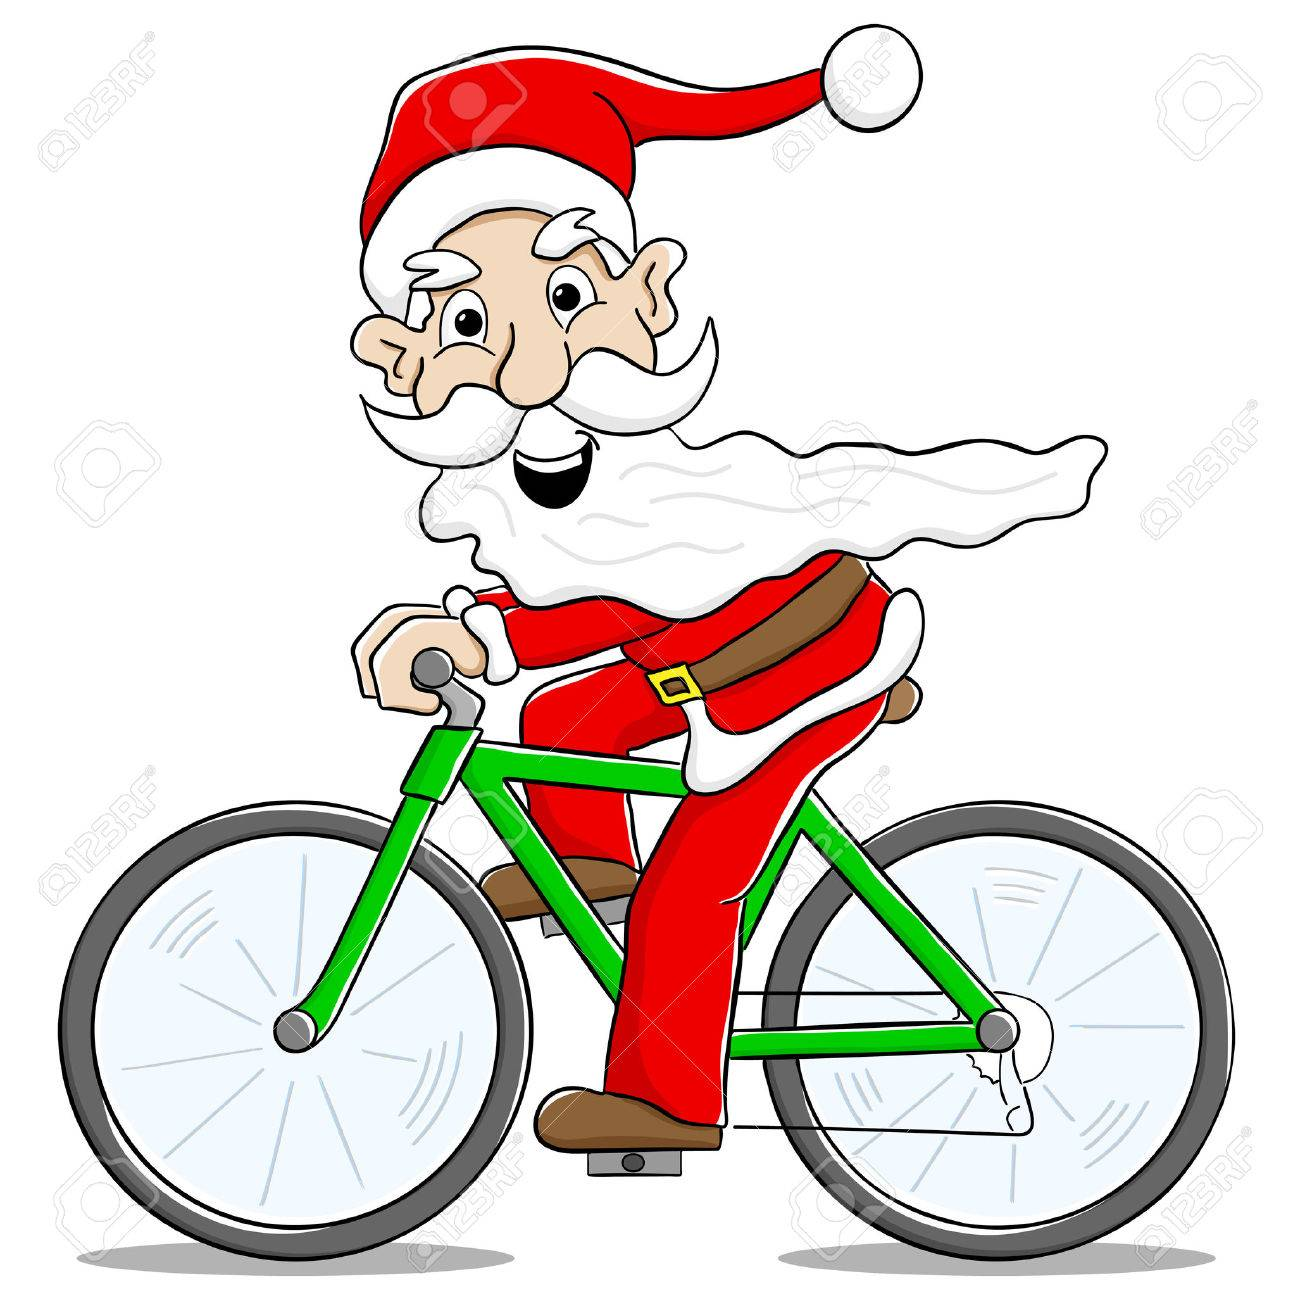 Bicycle clipart christmas. Cliparts free download clip